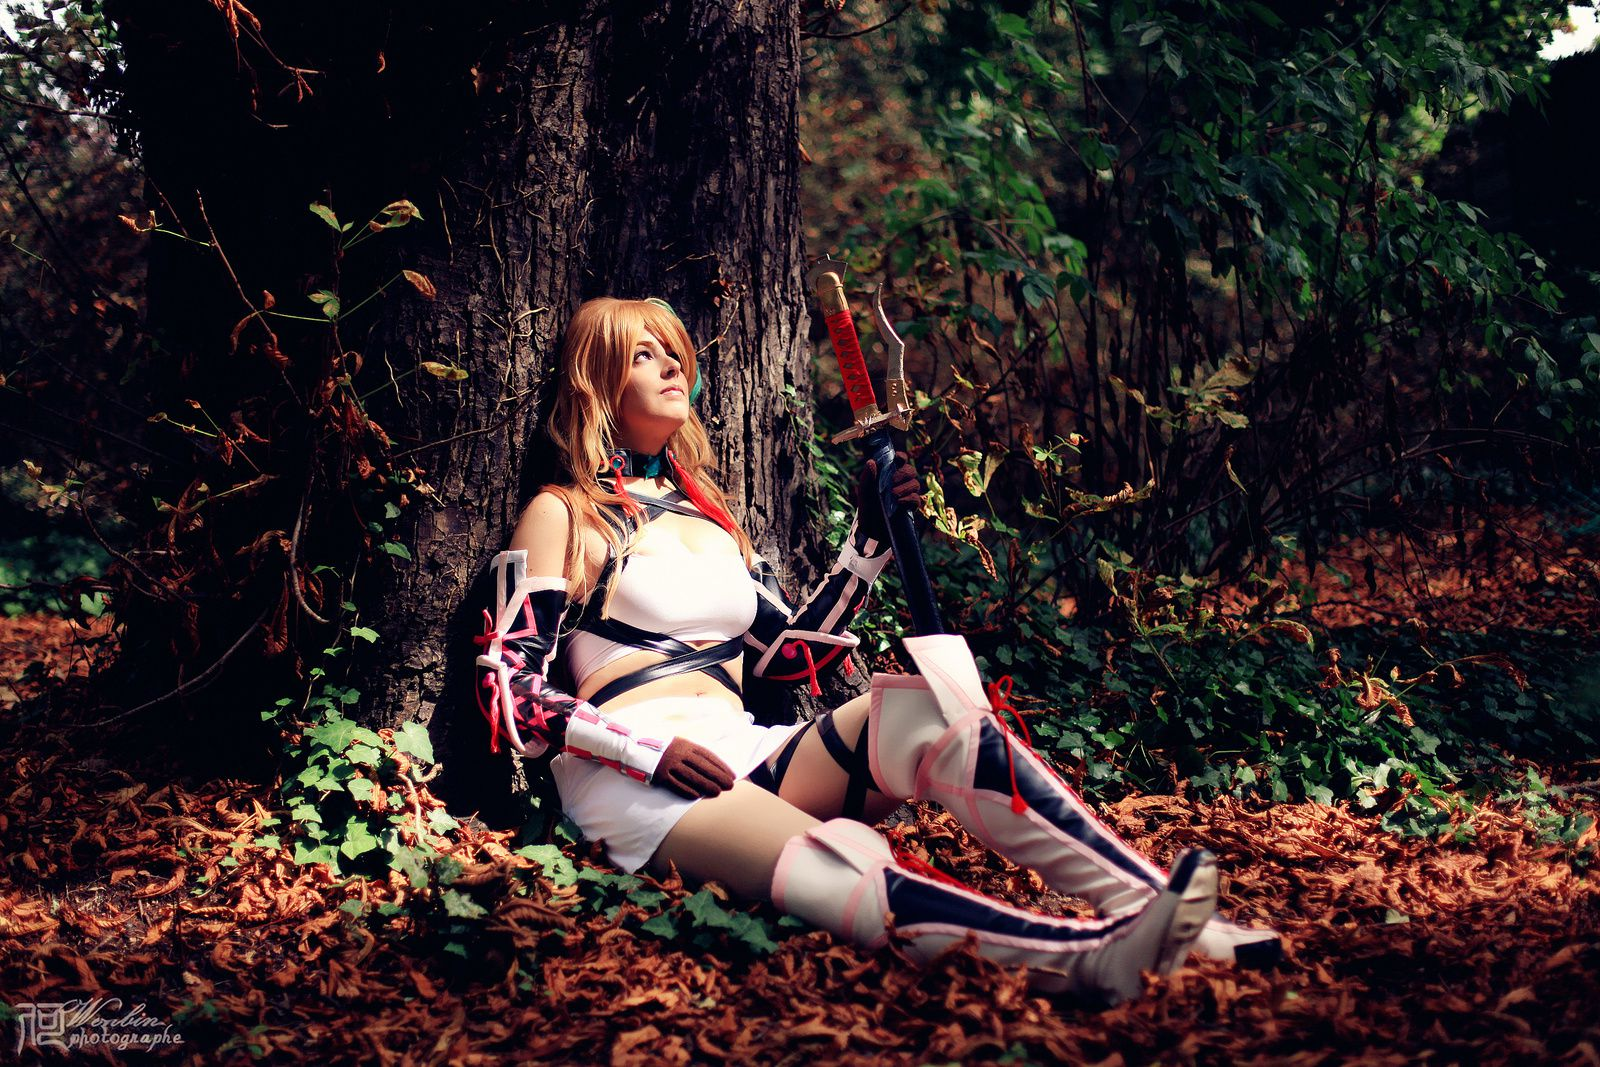 Parle-moi Cosplay #128 : Lex Cosplay